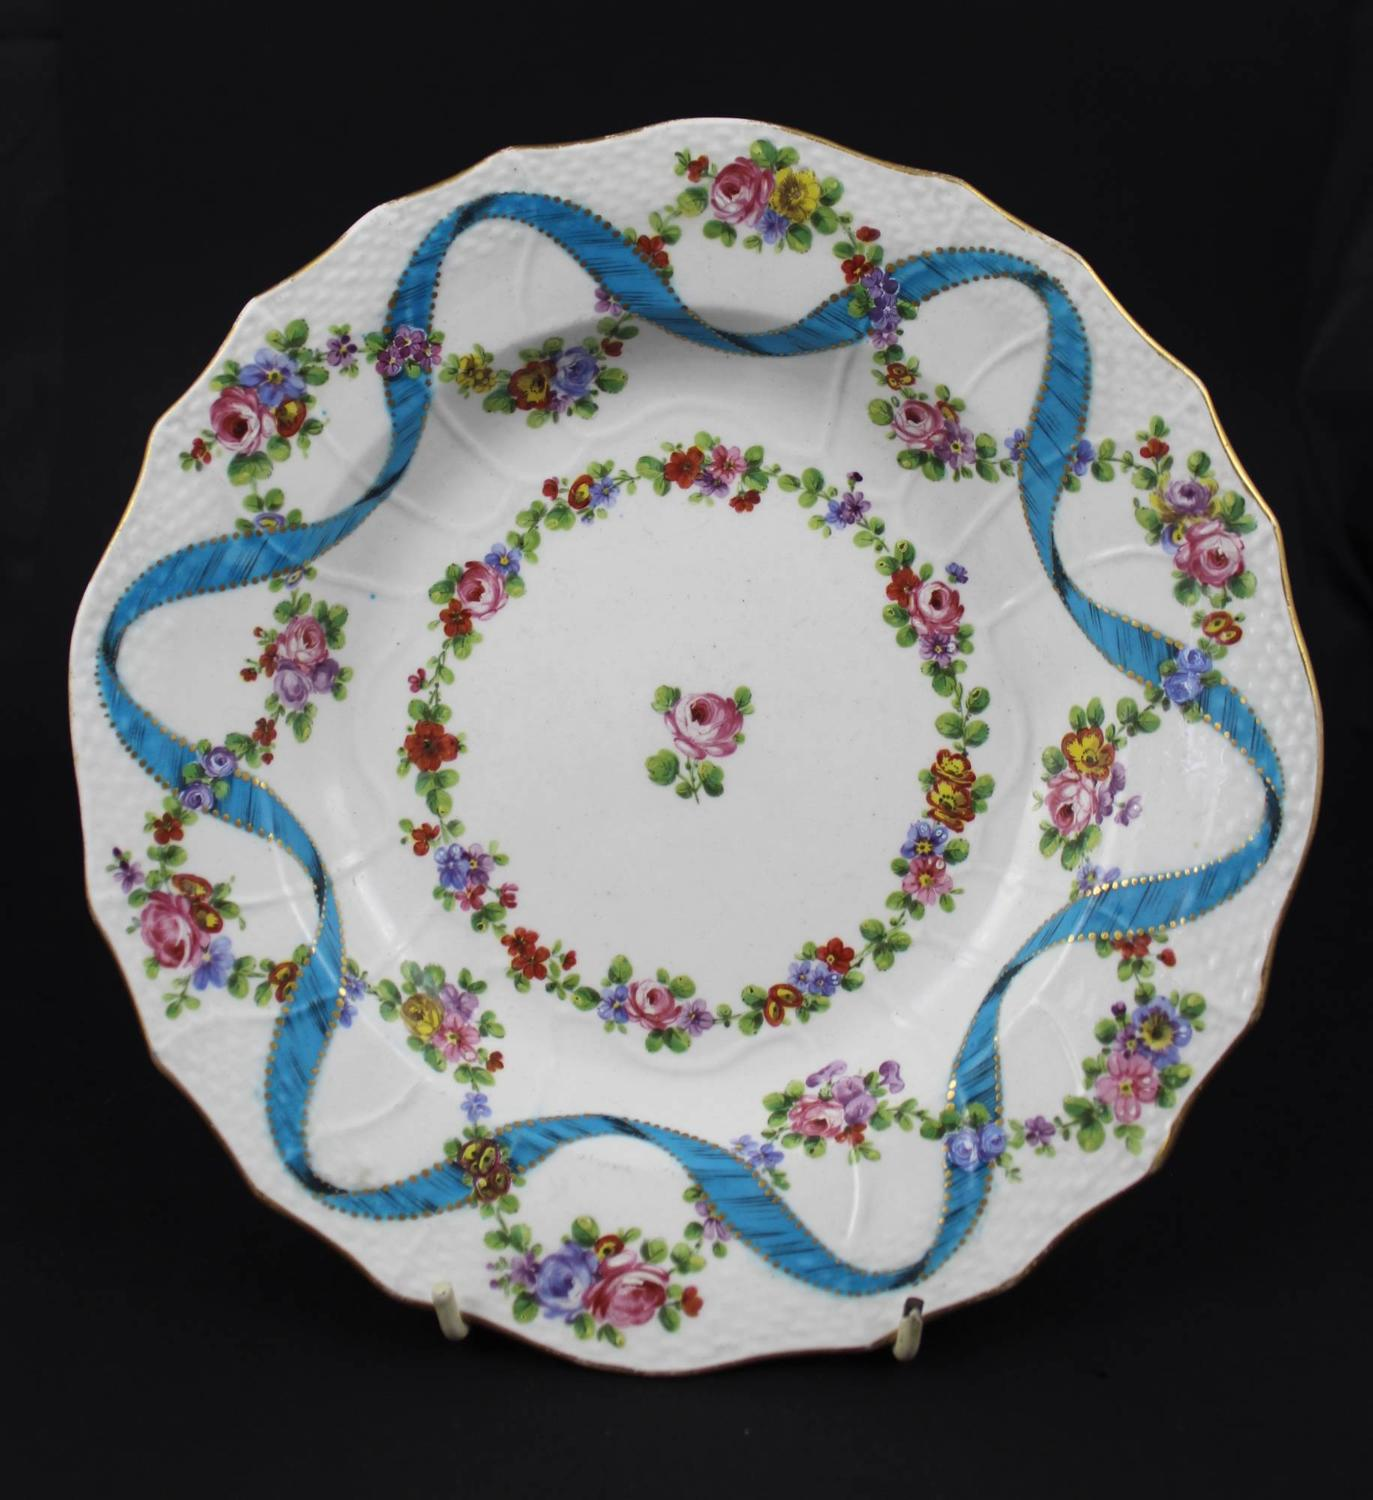 A 19th Century Staffordshire Porcelain Plate in Sevres Style